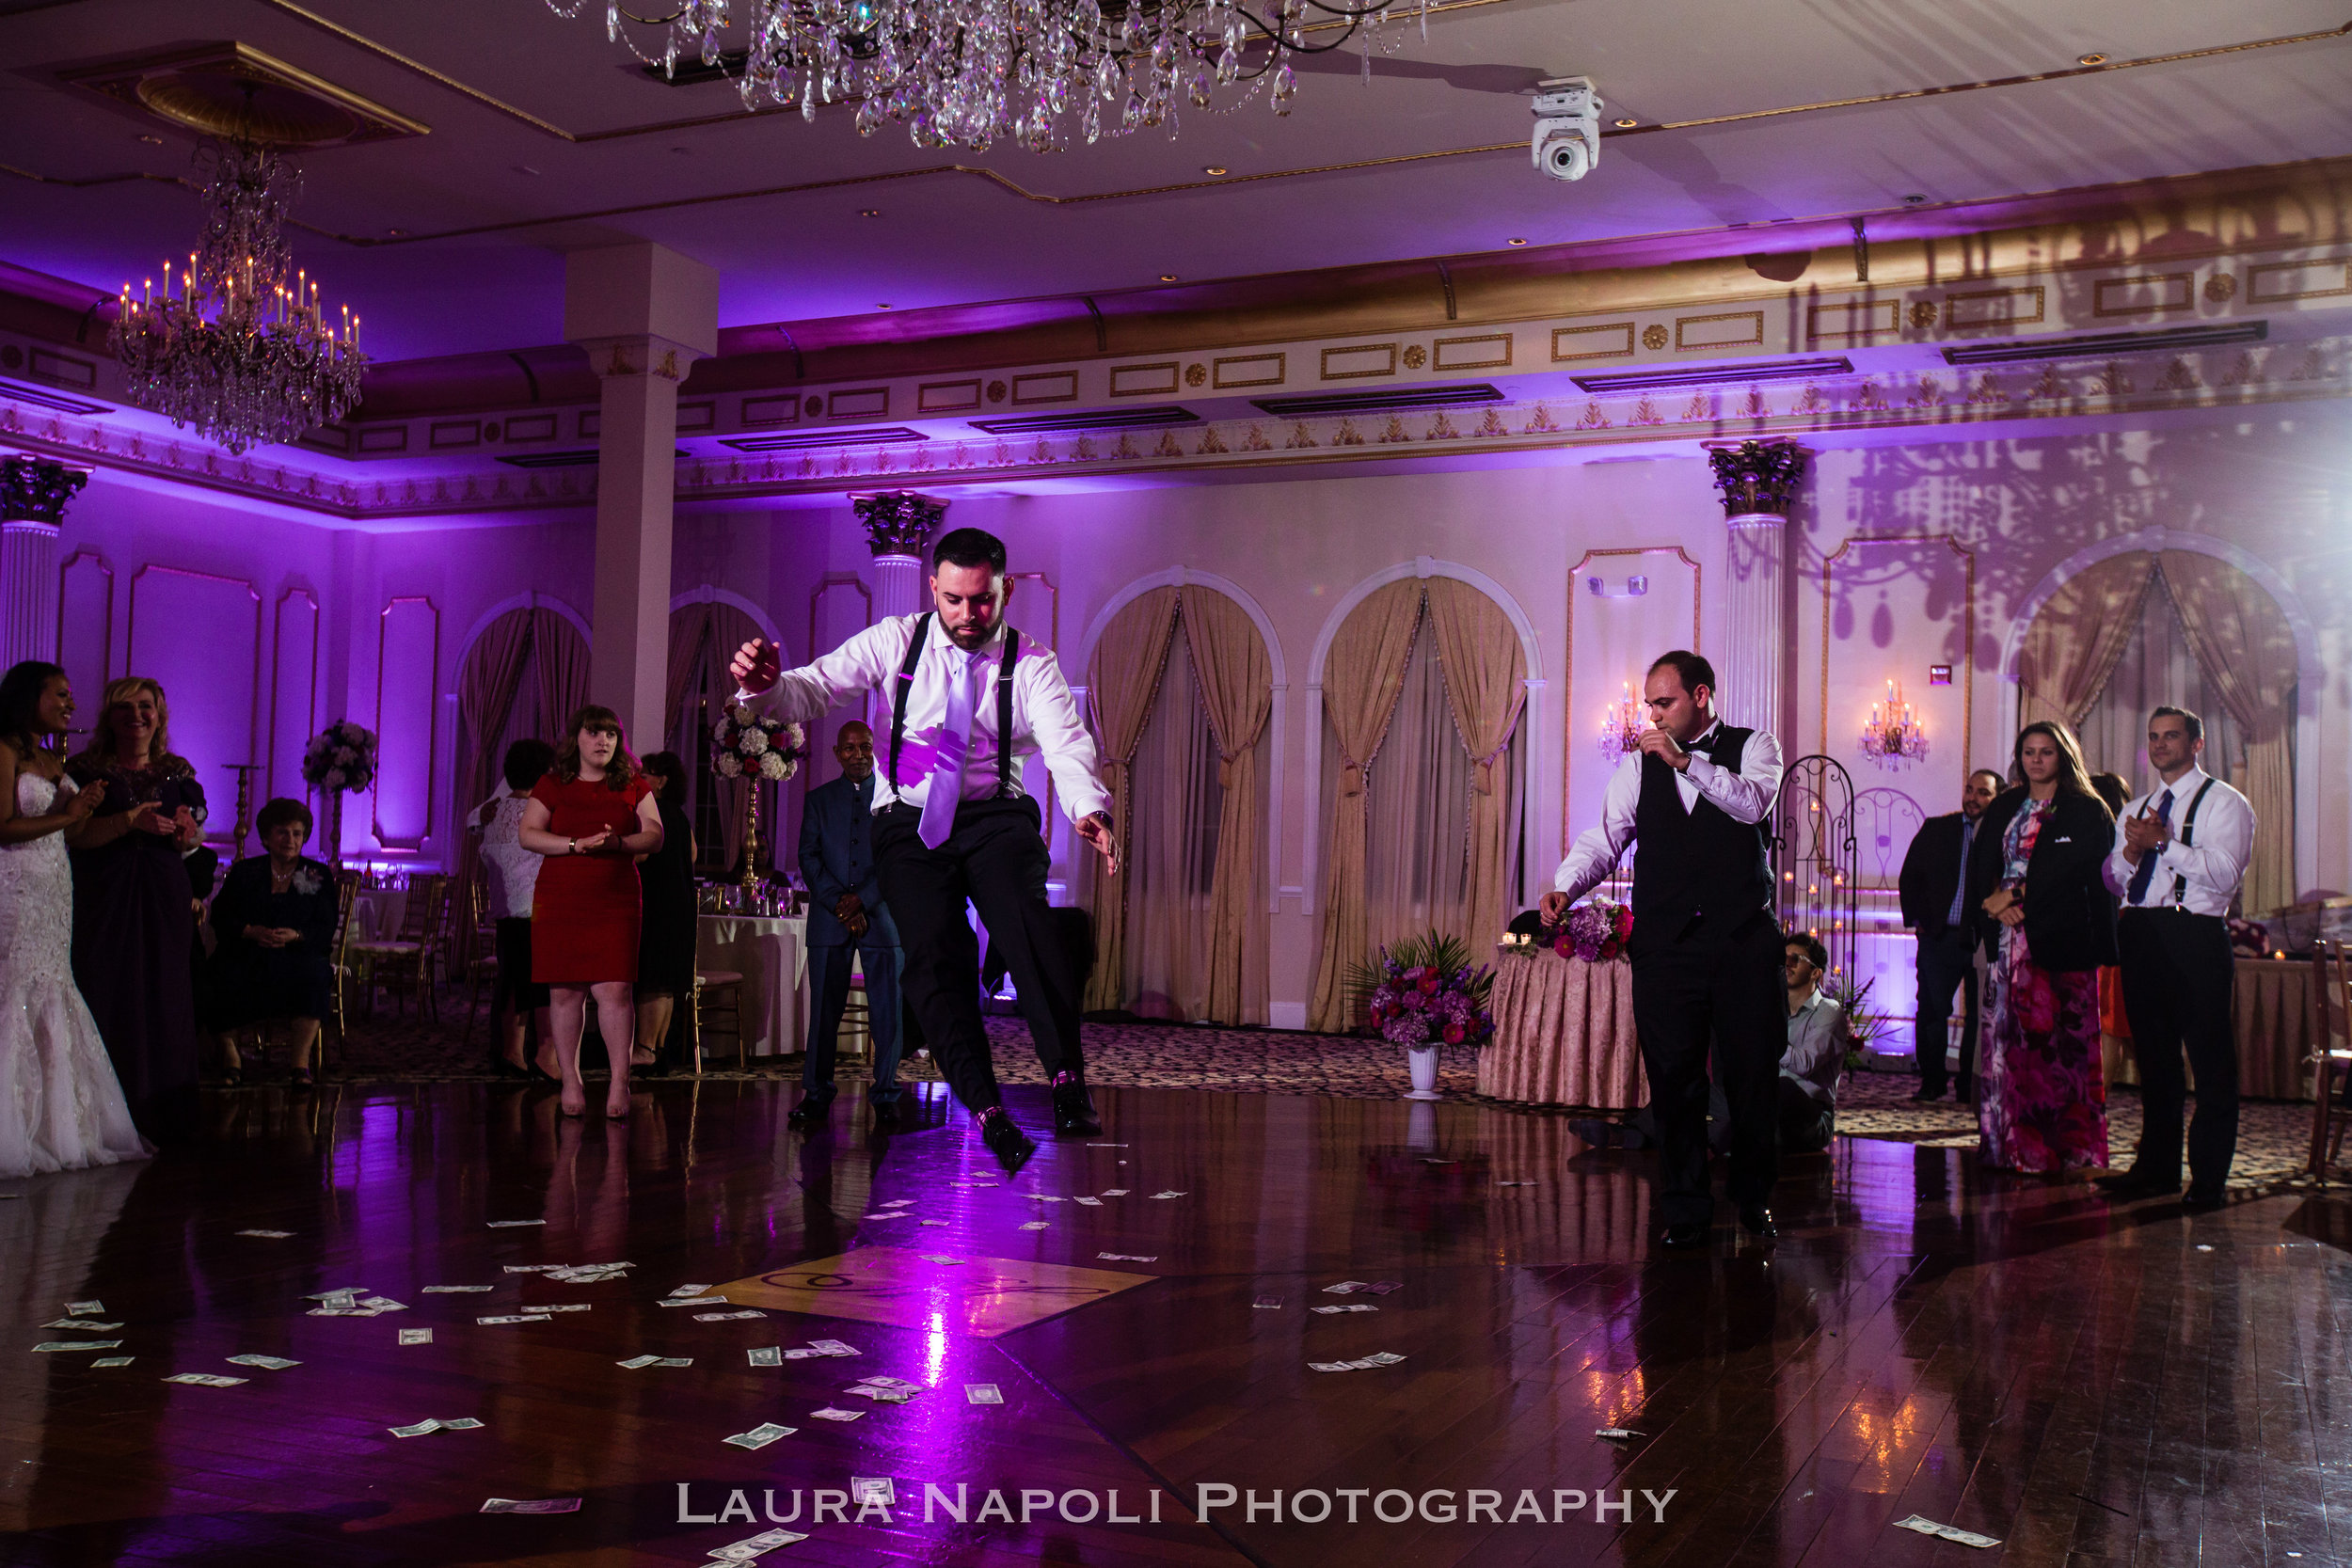 Scotlandrungolfclubweddingsouthjerseyweddingphotographer -47.jpg